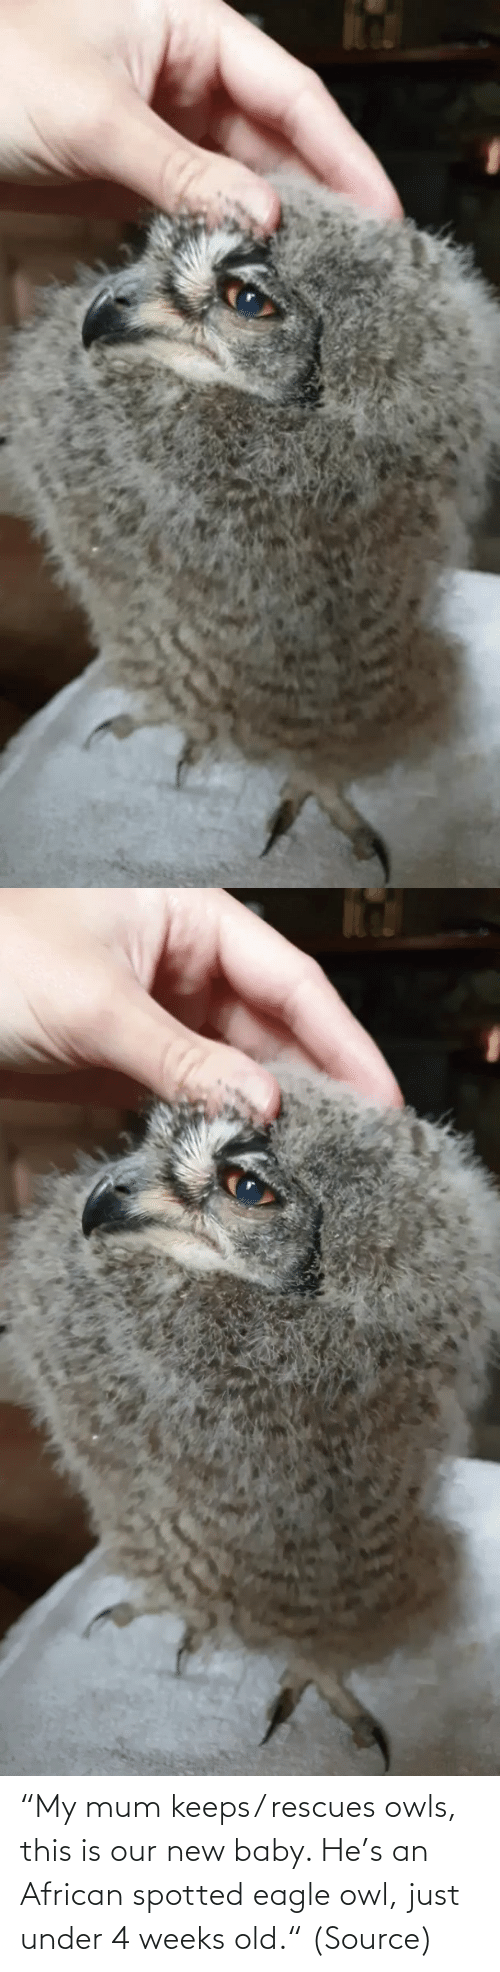 "Old: ""My mum keeps/ rescues owls, this is our new baby. He's an African spotted eagle owl, just under 4 weeks old."" (Source)"